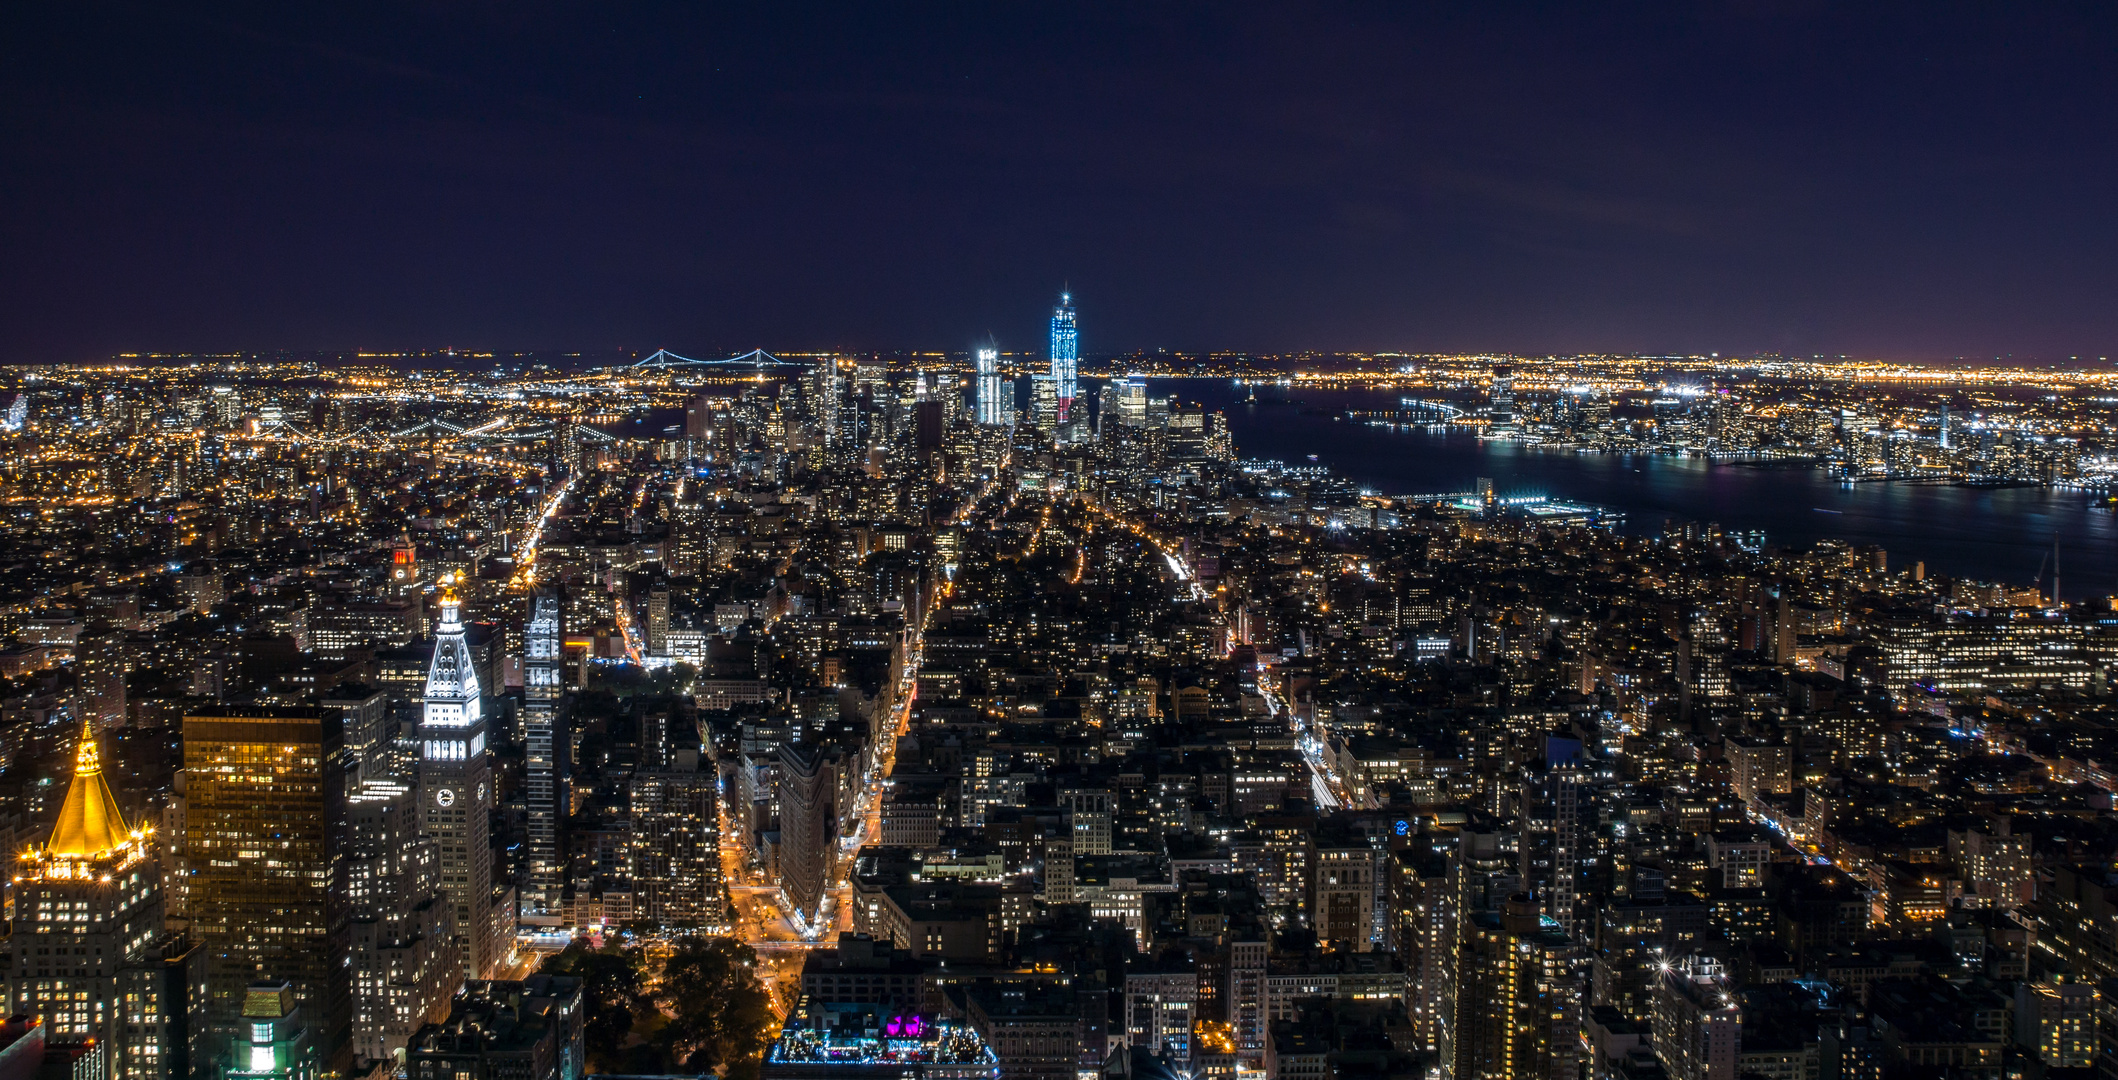 NYC Manhatten Skyline bei Nacht 2012